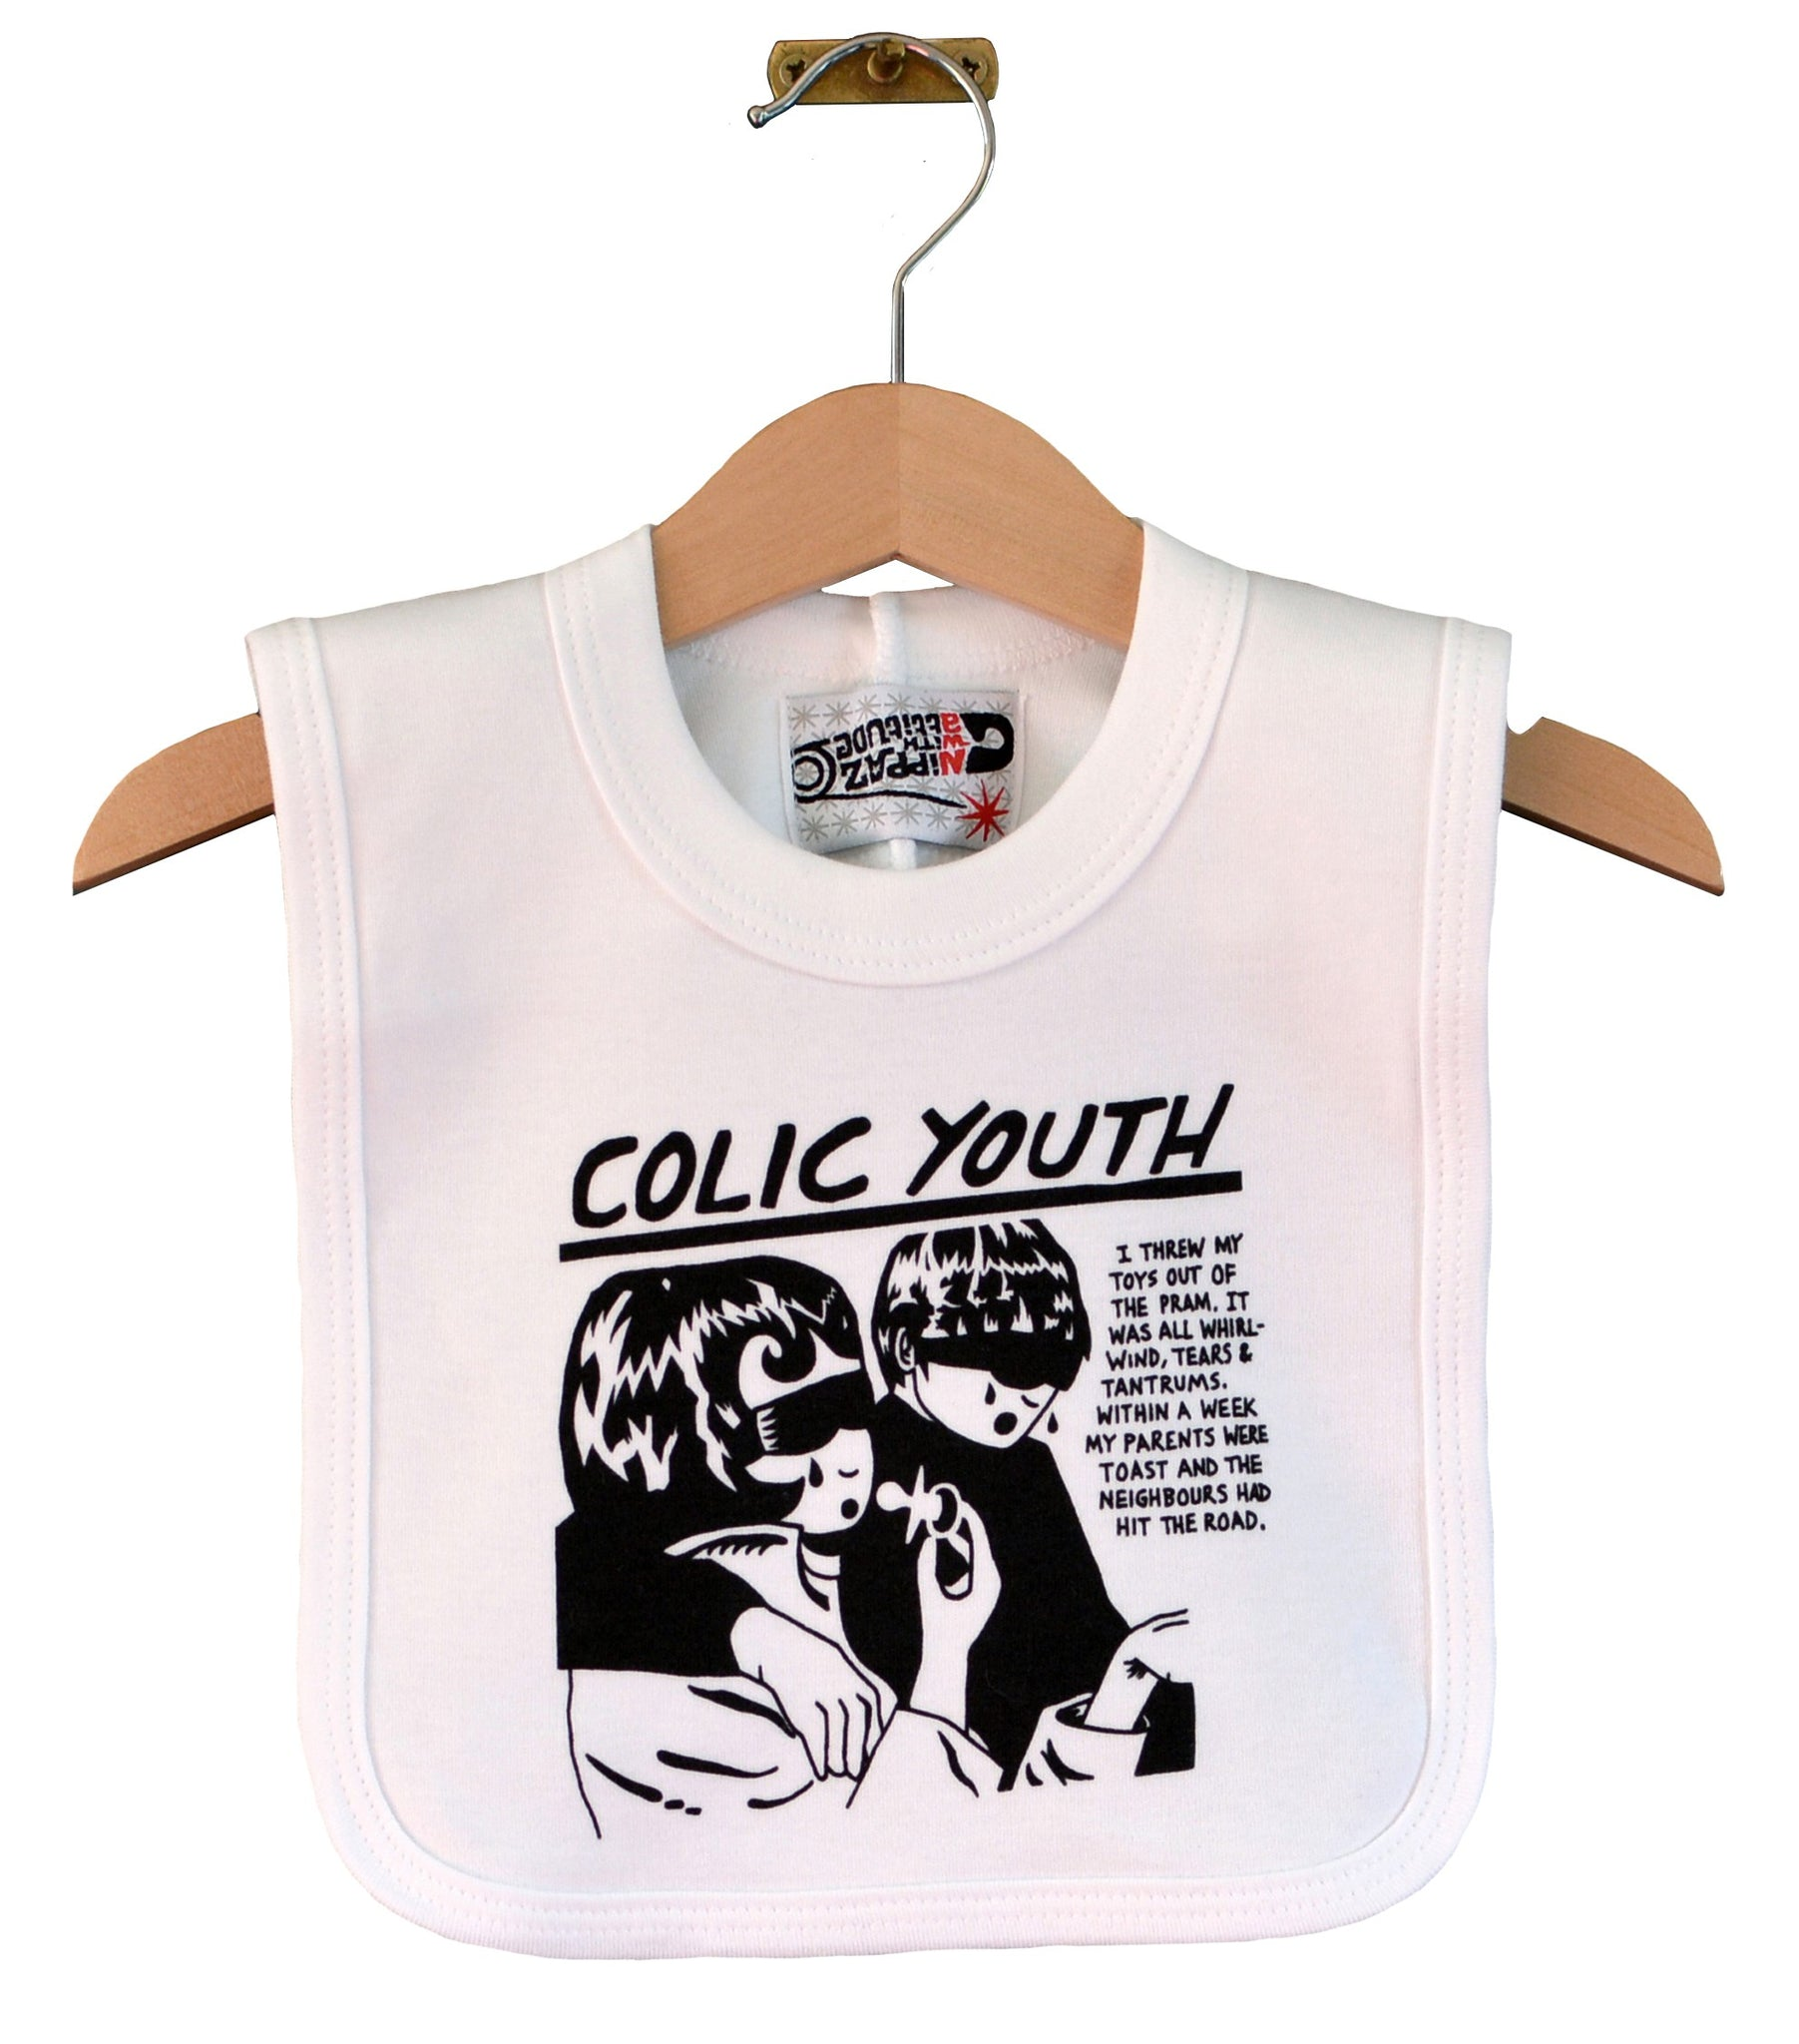 COLIC YOUTH BIB N.W.A